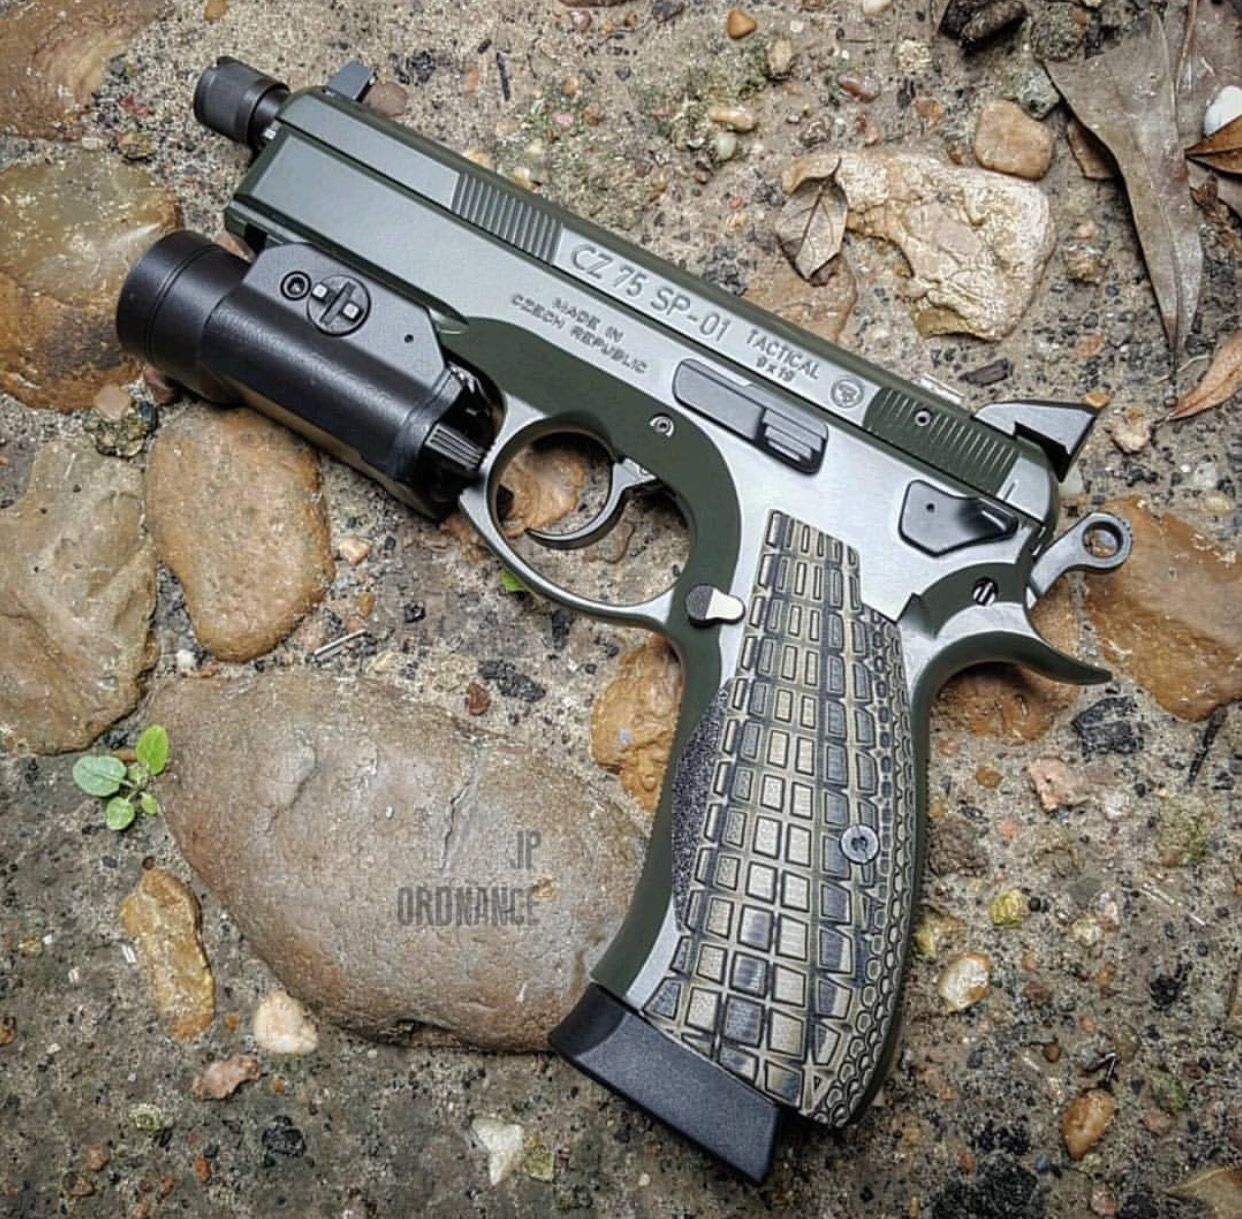 Pin by rae industries on CZ 75 SP-01 | Hand guns, Weapons